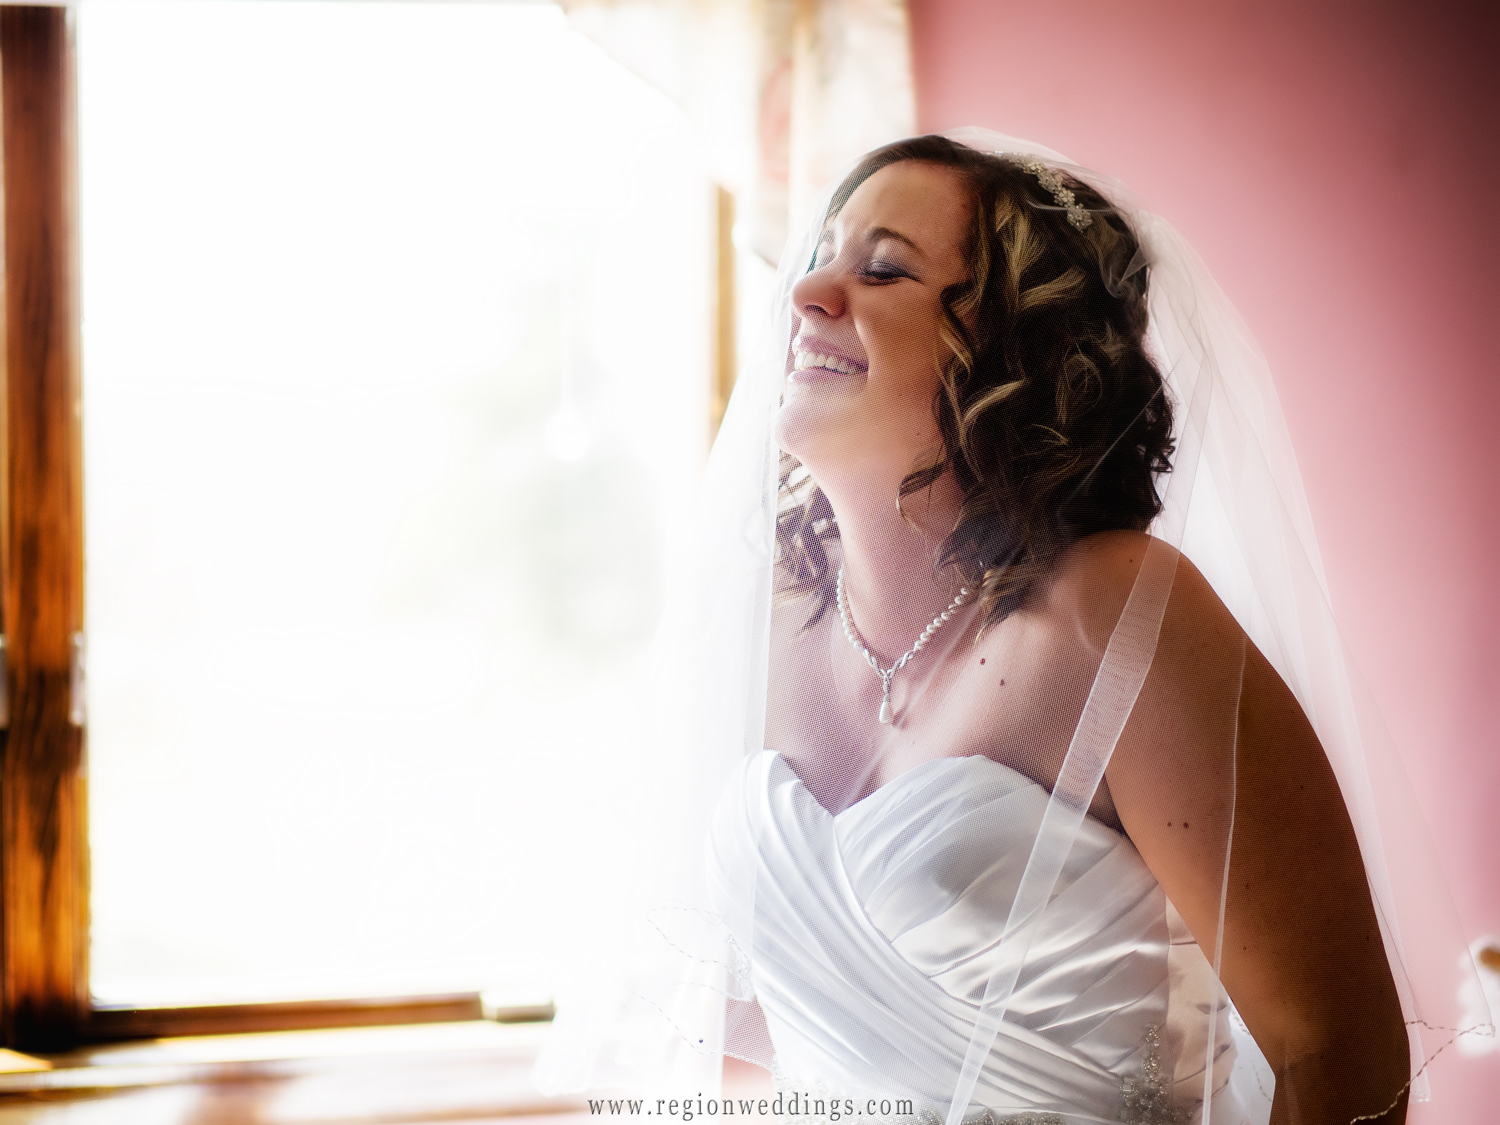 An emotional moment for the bride on wedding day.